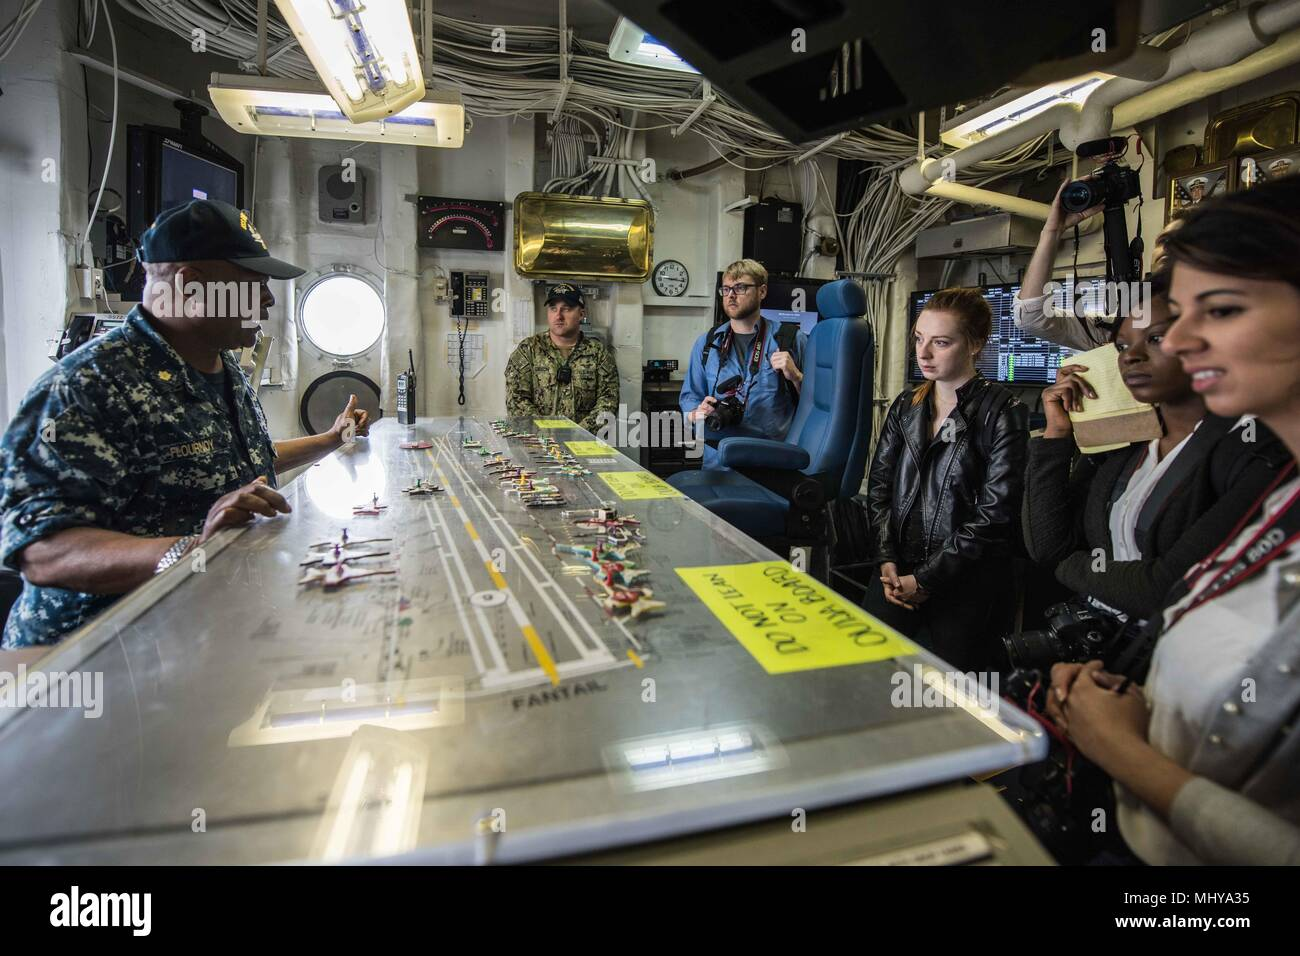 180503-N-CL027-0103 YOKOSUKA, Japan (May 3, 2018) Lt. Cmdr. Terrance Flournoy, the flight deck handler for the Navy's forward-deployed aircraft carrier, USS Ronald Reagan (CVN 76), explains flight deck operations to Northwestern University media students during a ship tour, May 3, 2018. During the tour, the students visited various locations throughout the ship including the flight deck, hangar bay and bridge. Ronald Reagan, the flagship of Carrier Strike Group 5, provides a combat-ready force that protects and defends the collective maritime interests of its allies and partners in the Indo-Pa - Stock Image